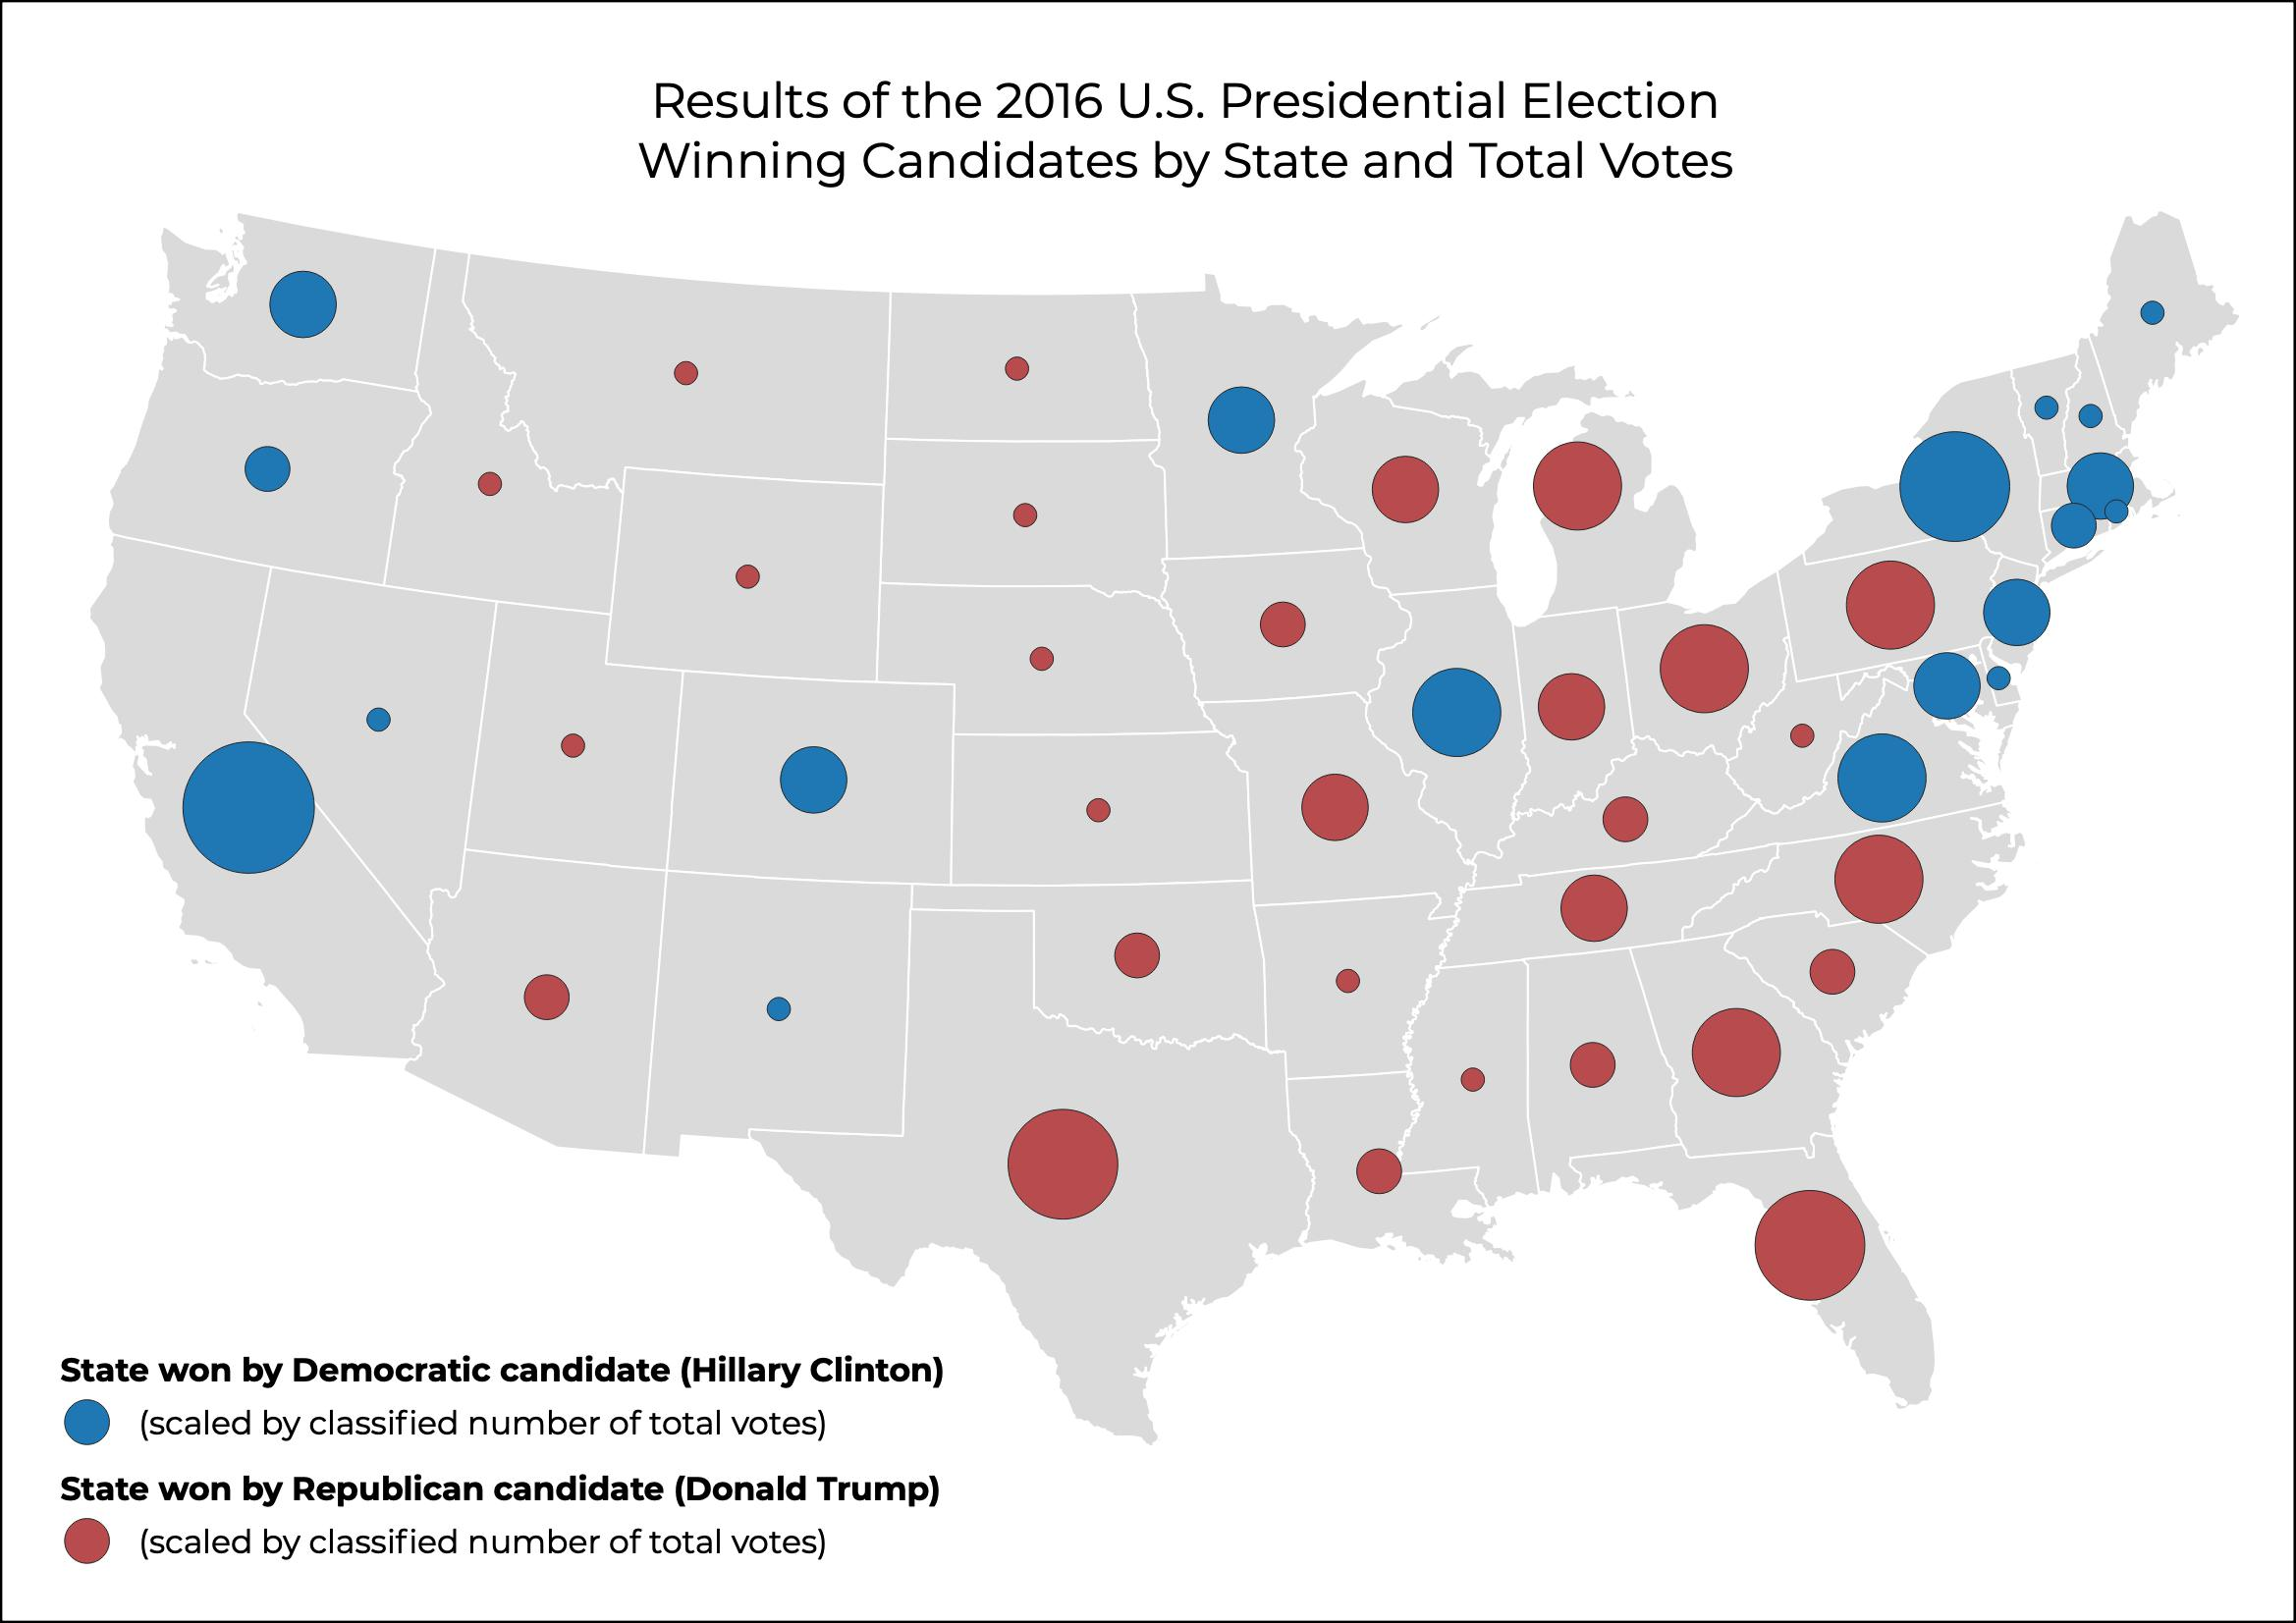 Thematic Mapping with QGIS: Mapping Election Data - Geograf.io Learn